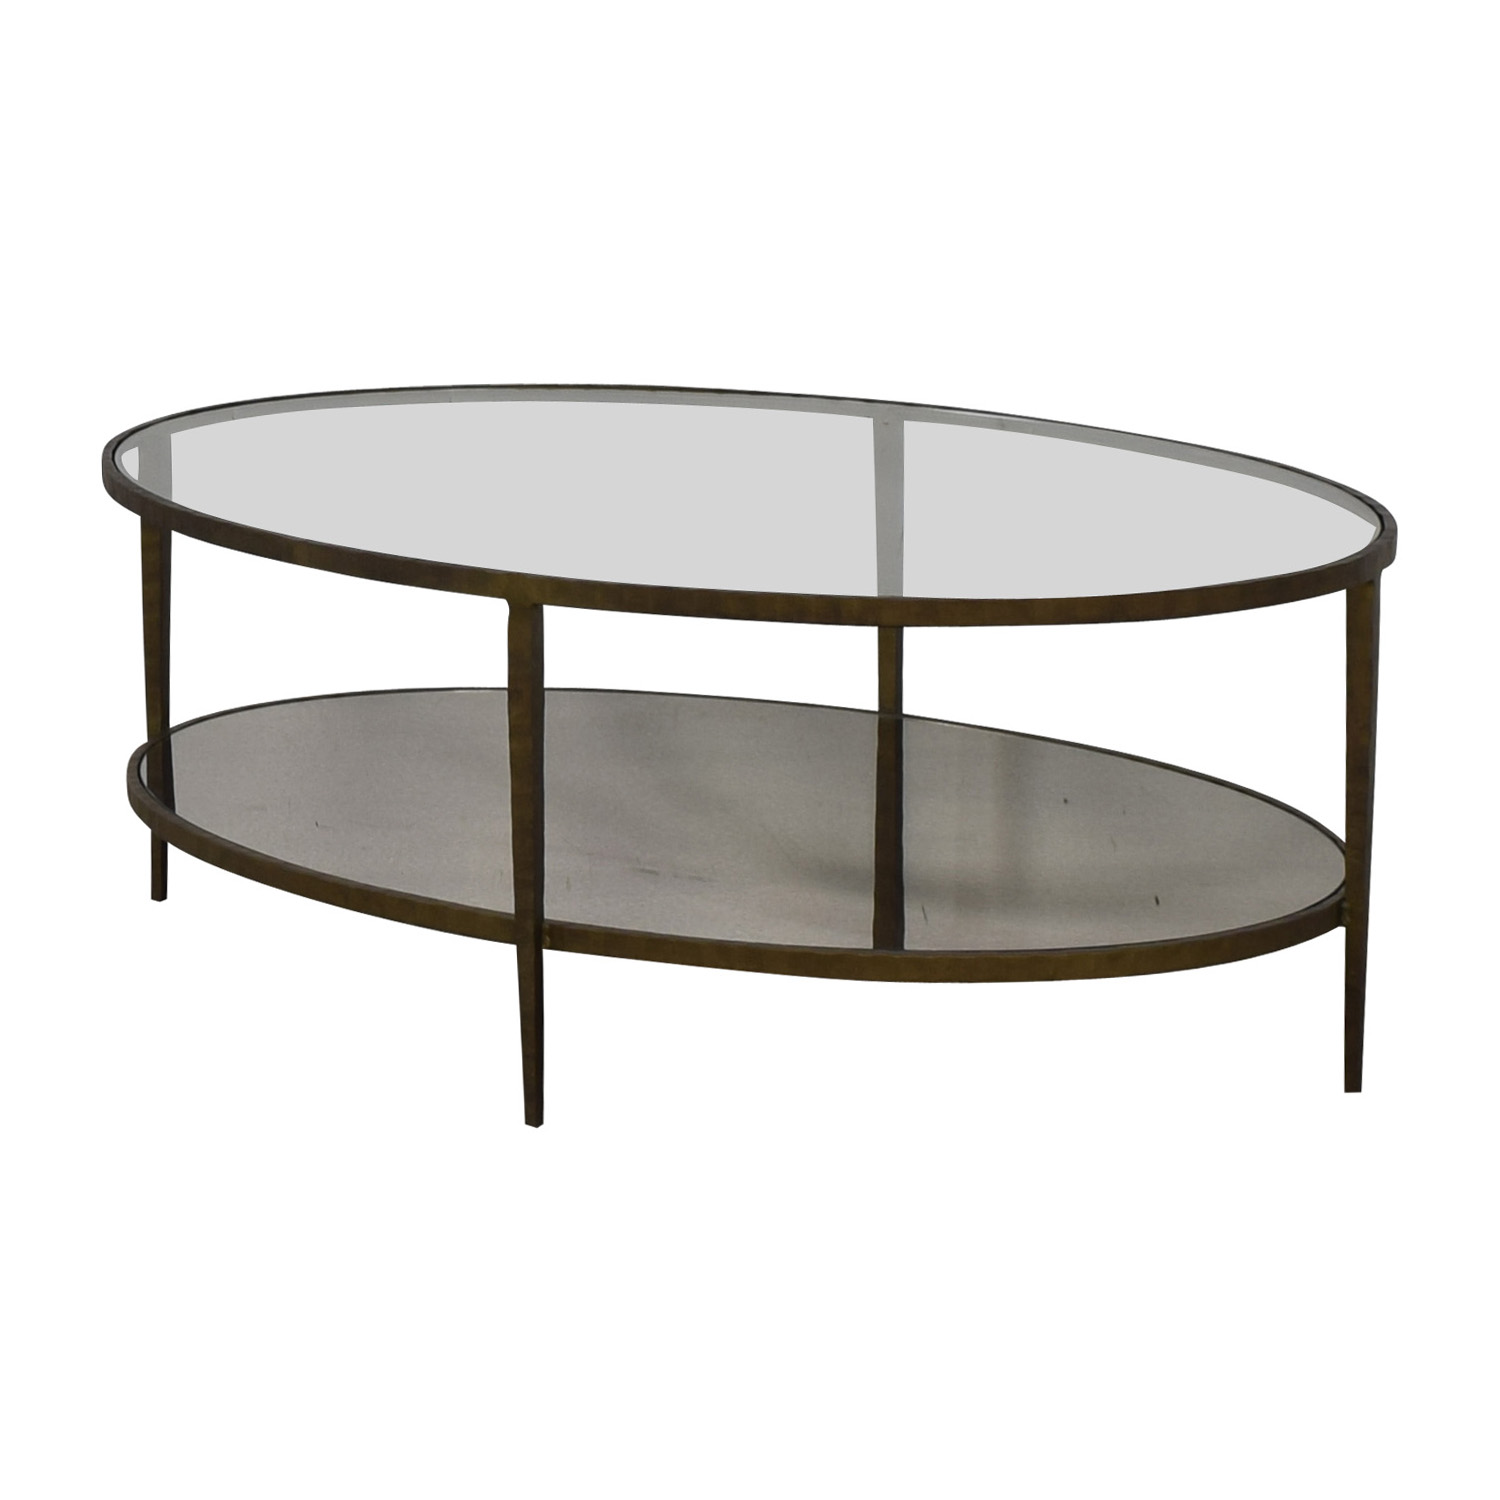 Crate & Barrel Crate & Barrel Clairemont Oval Coffee Table bronze